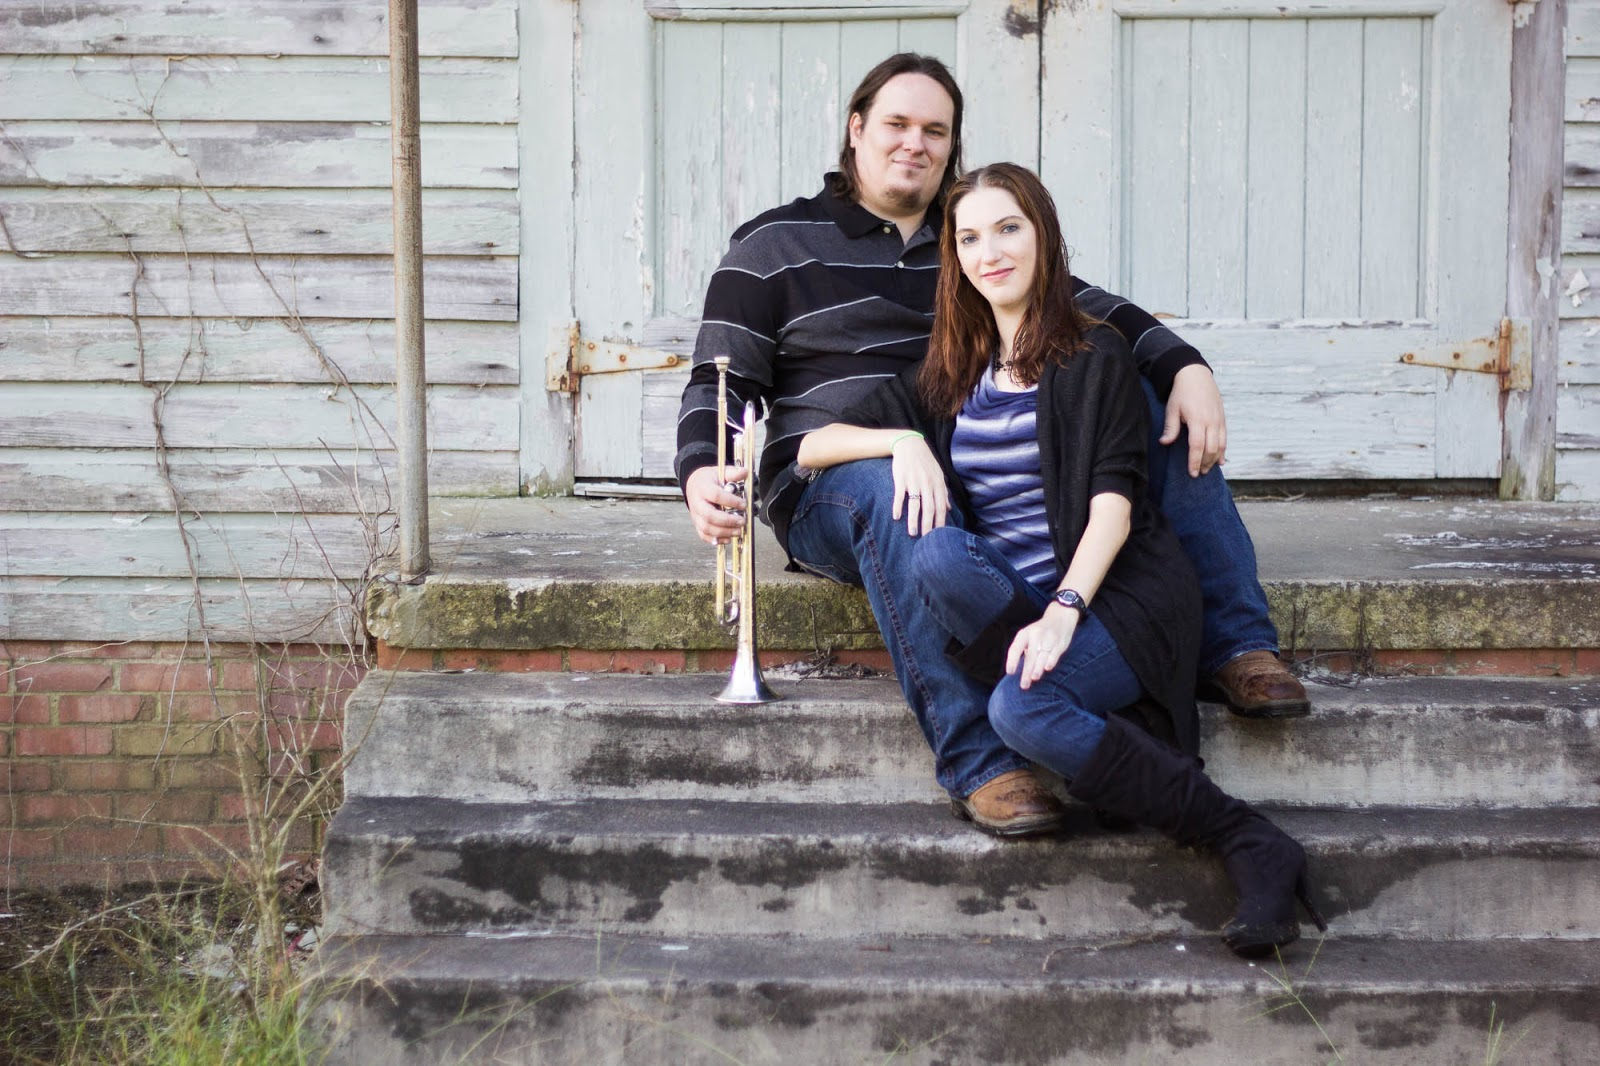 Eastern NC Engagement Photos | Tyler + Danielle | Bryant Tyson Photography | Cute Couples Pose Ideas | Marching Band